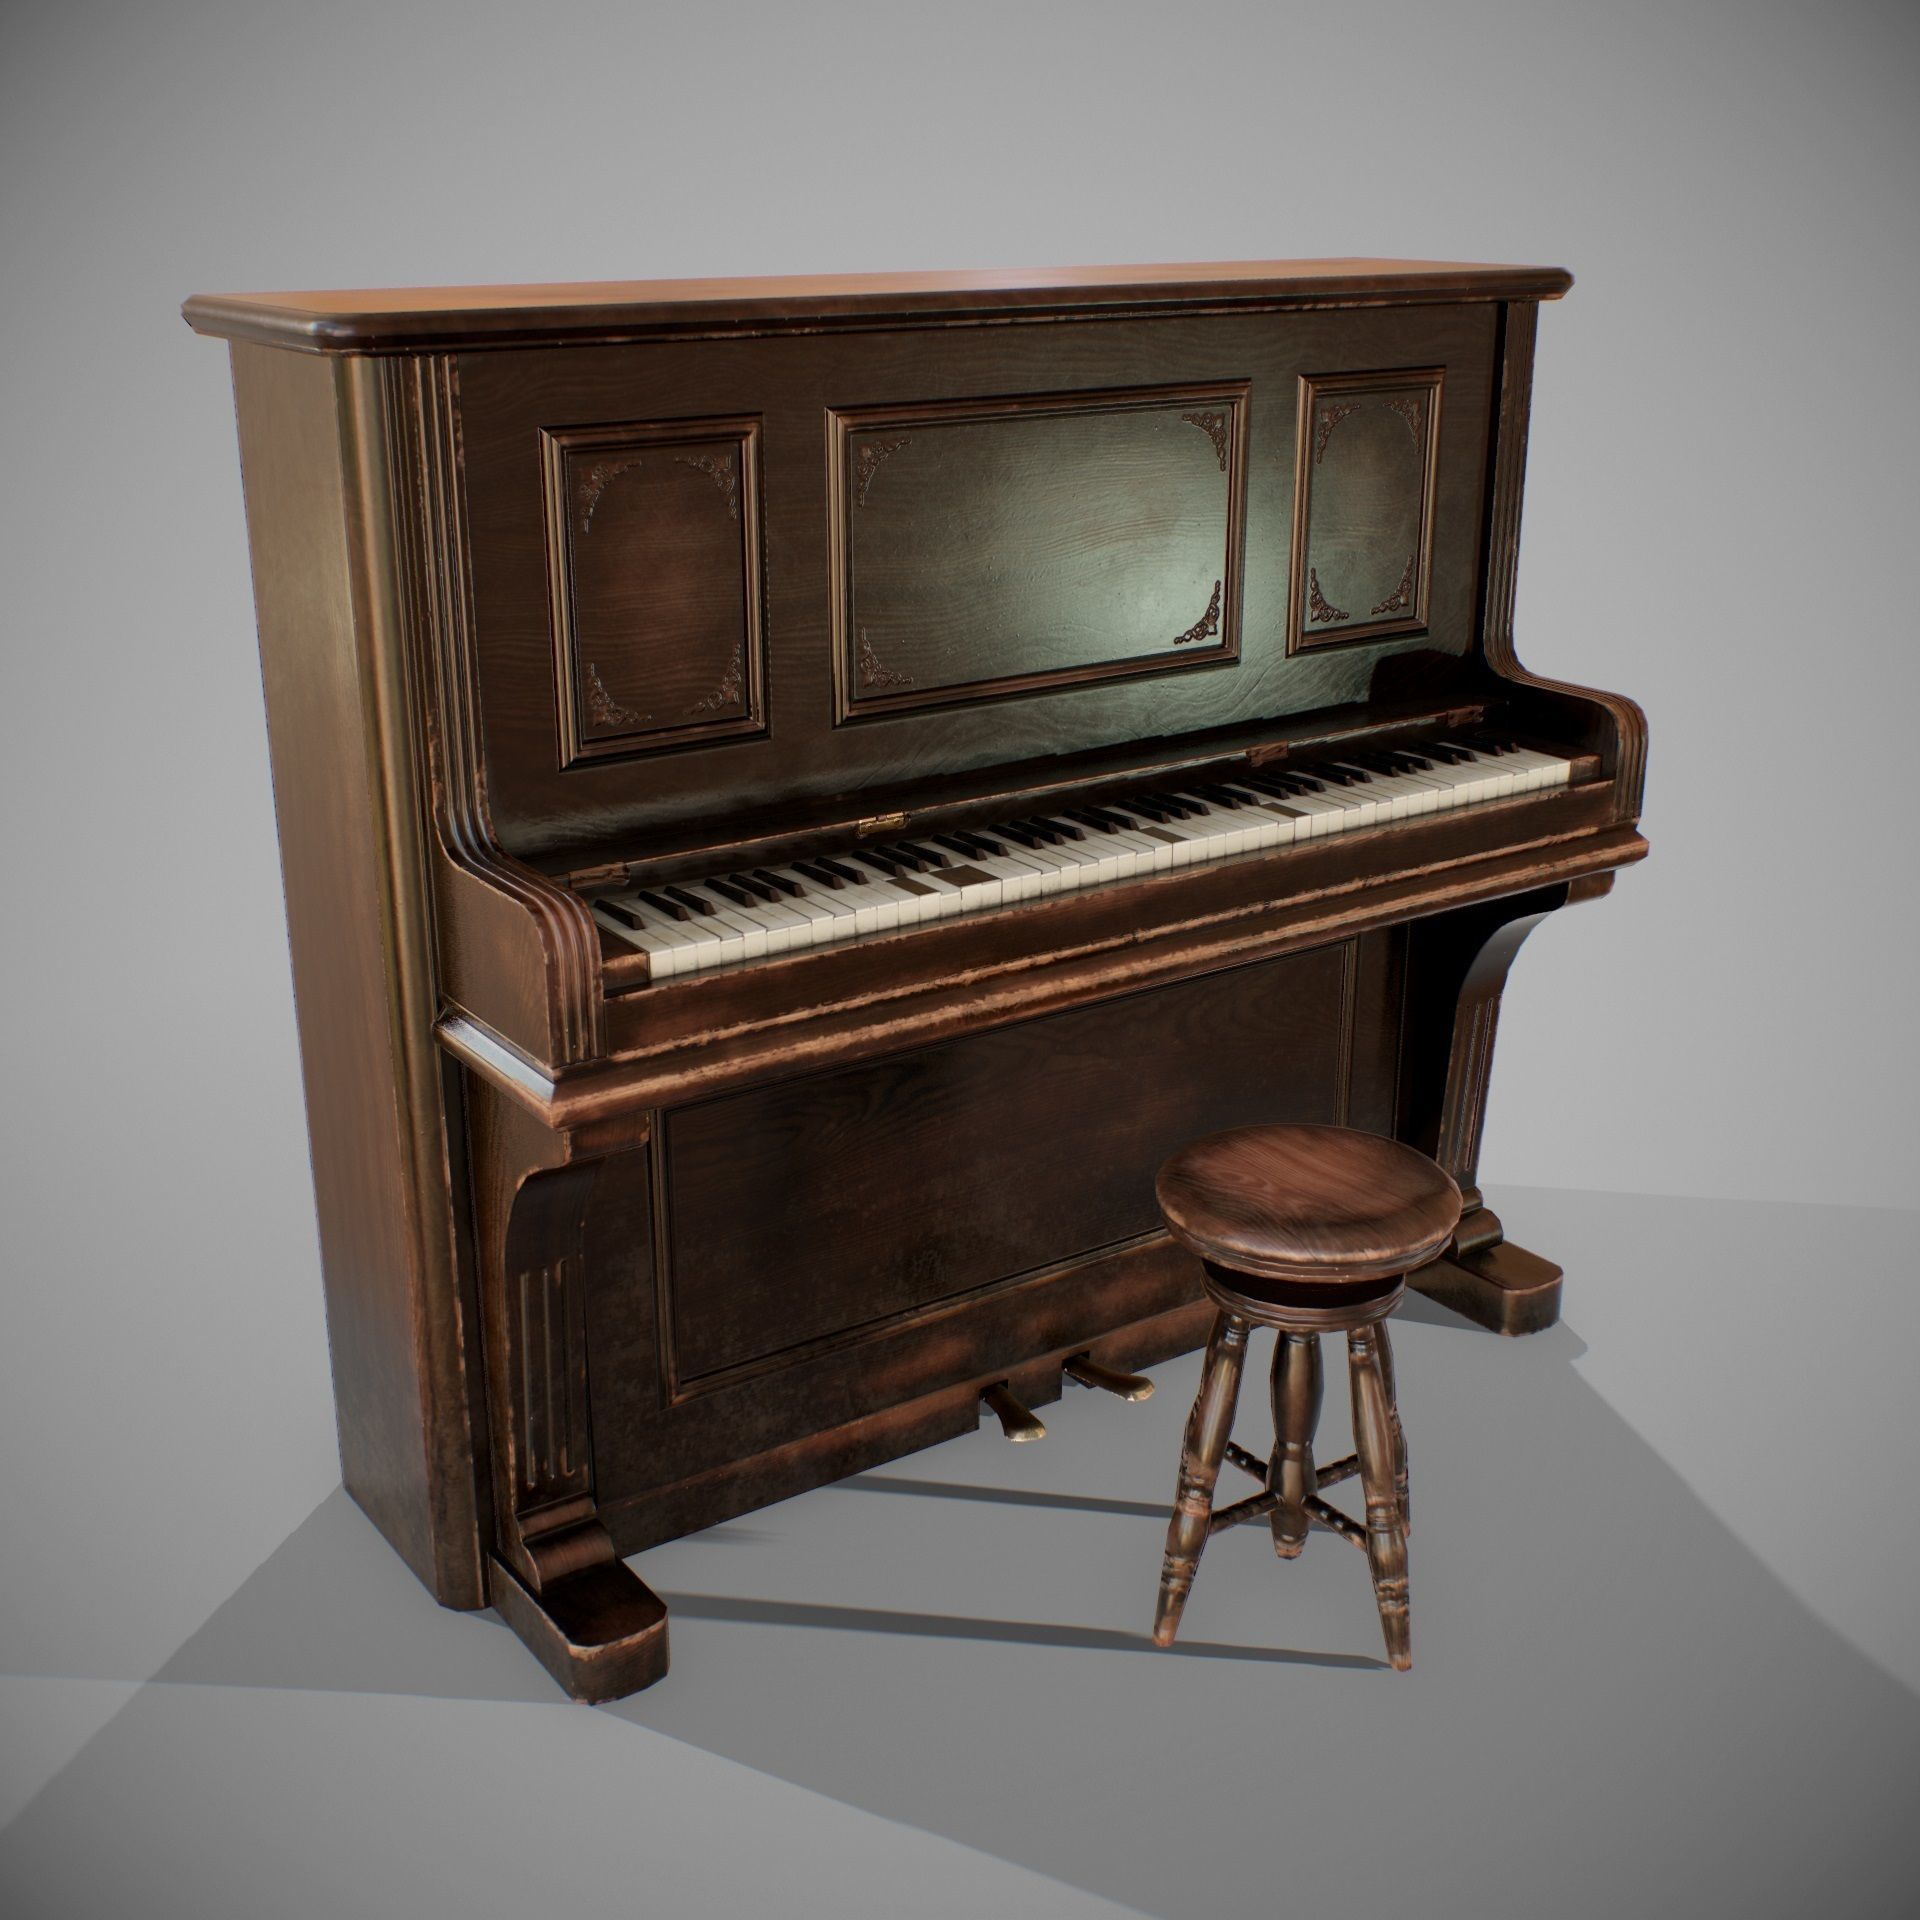 PBR Old Piano